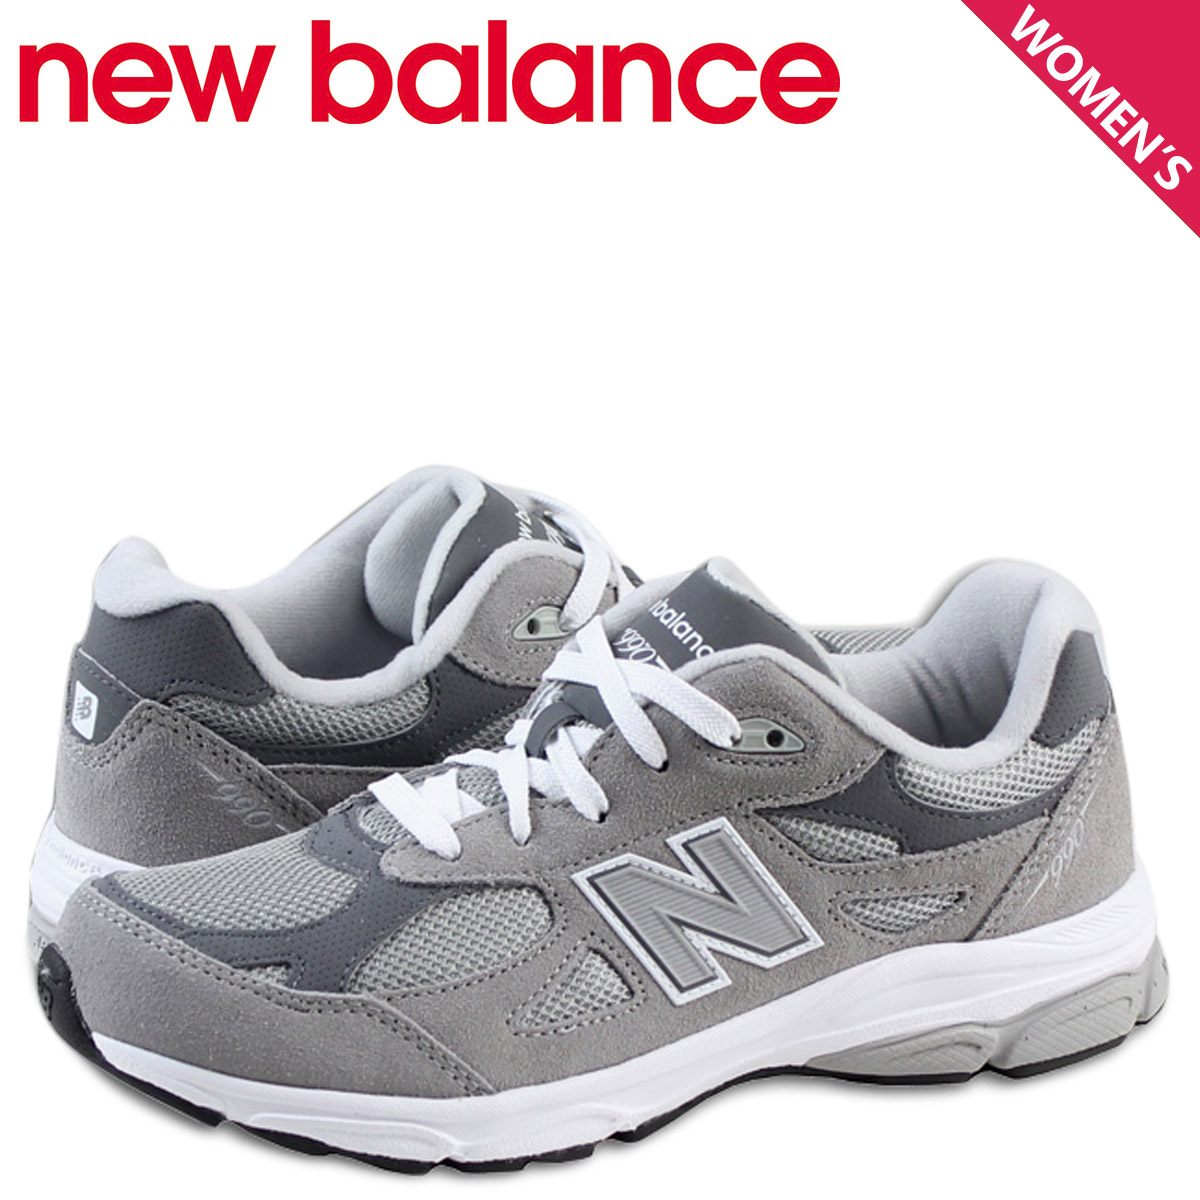 new balance new balance kids womens sneaker KJ990GRG M wise shoes grey